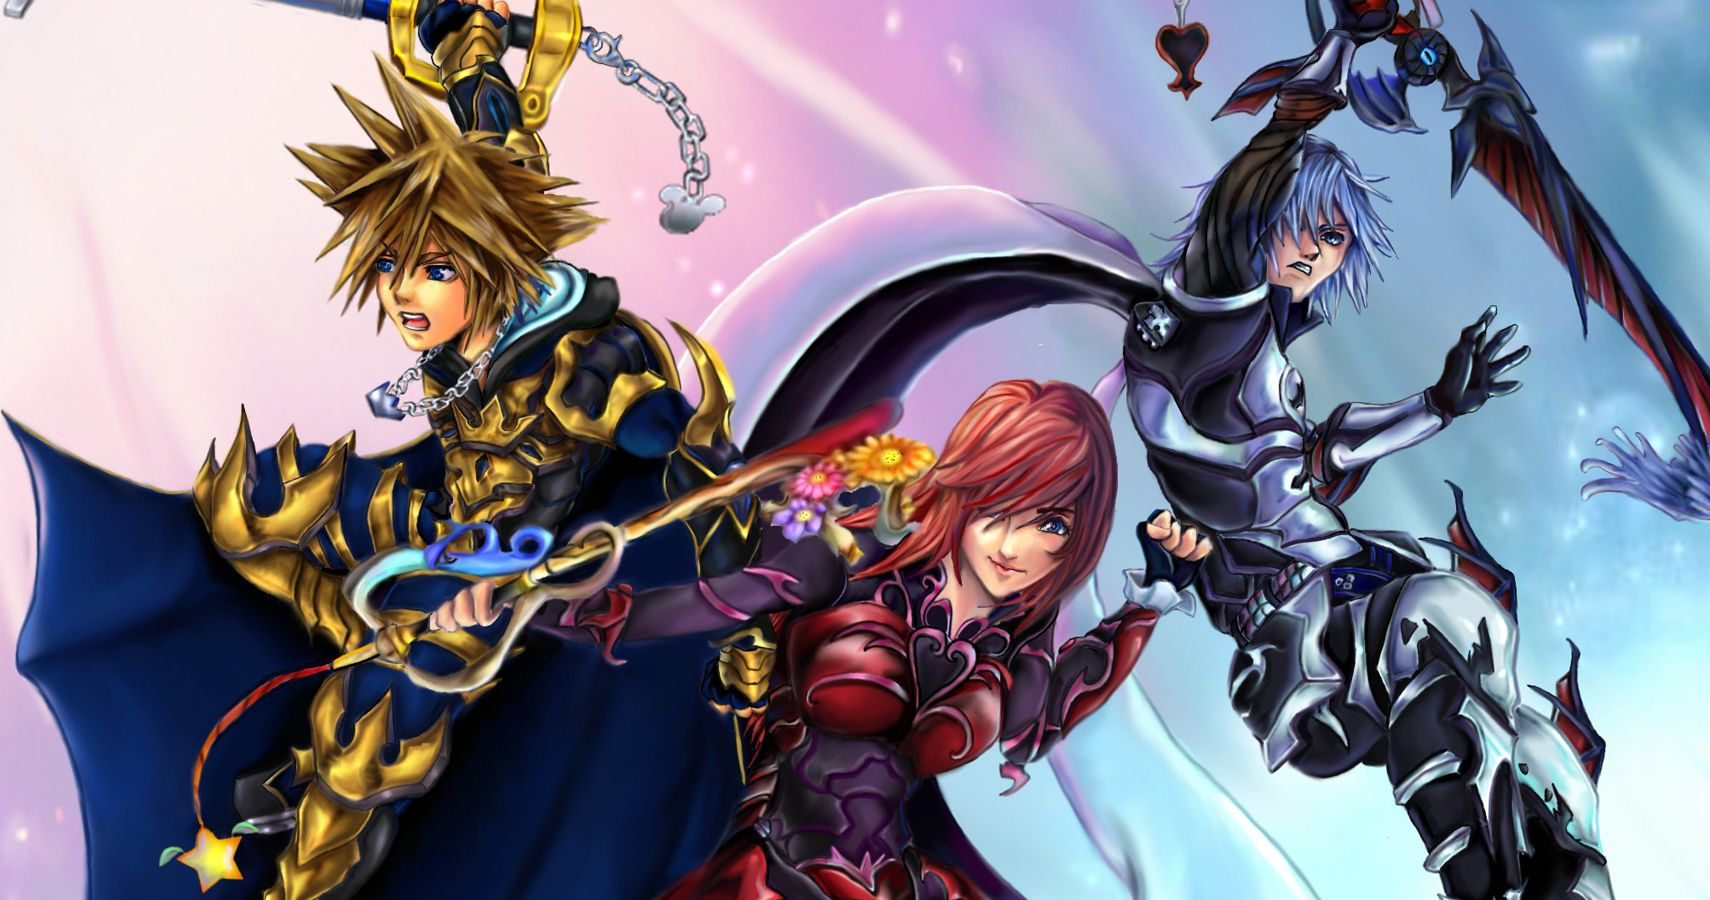 15 Overpowered Kingdom Hearts Characters (And 10 That Are Weak)